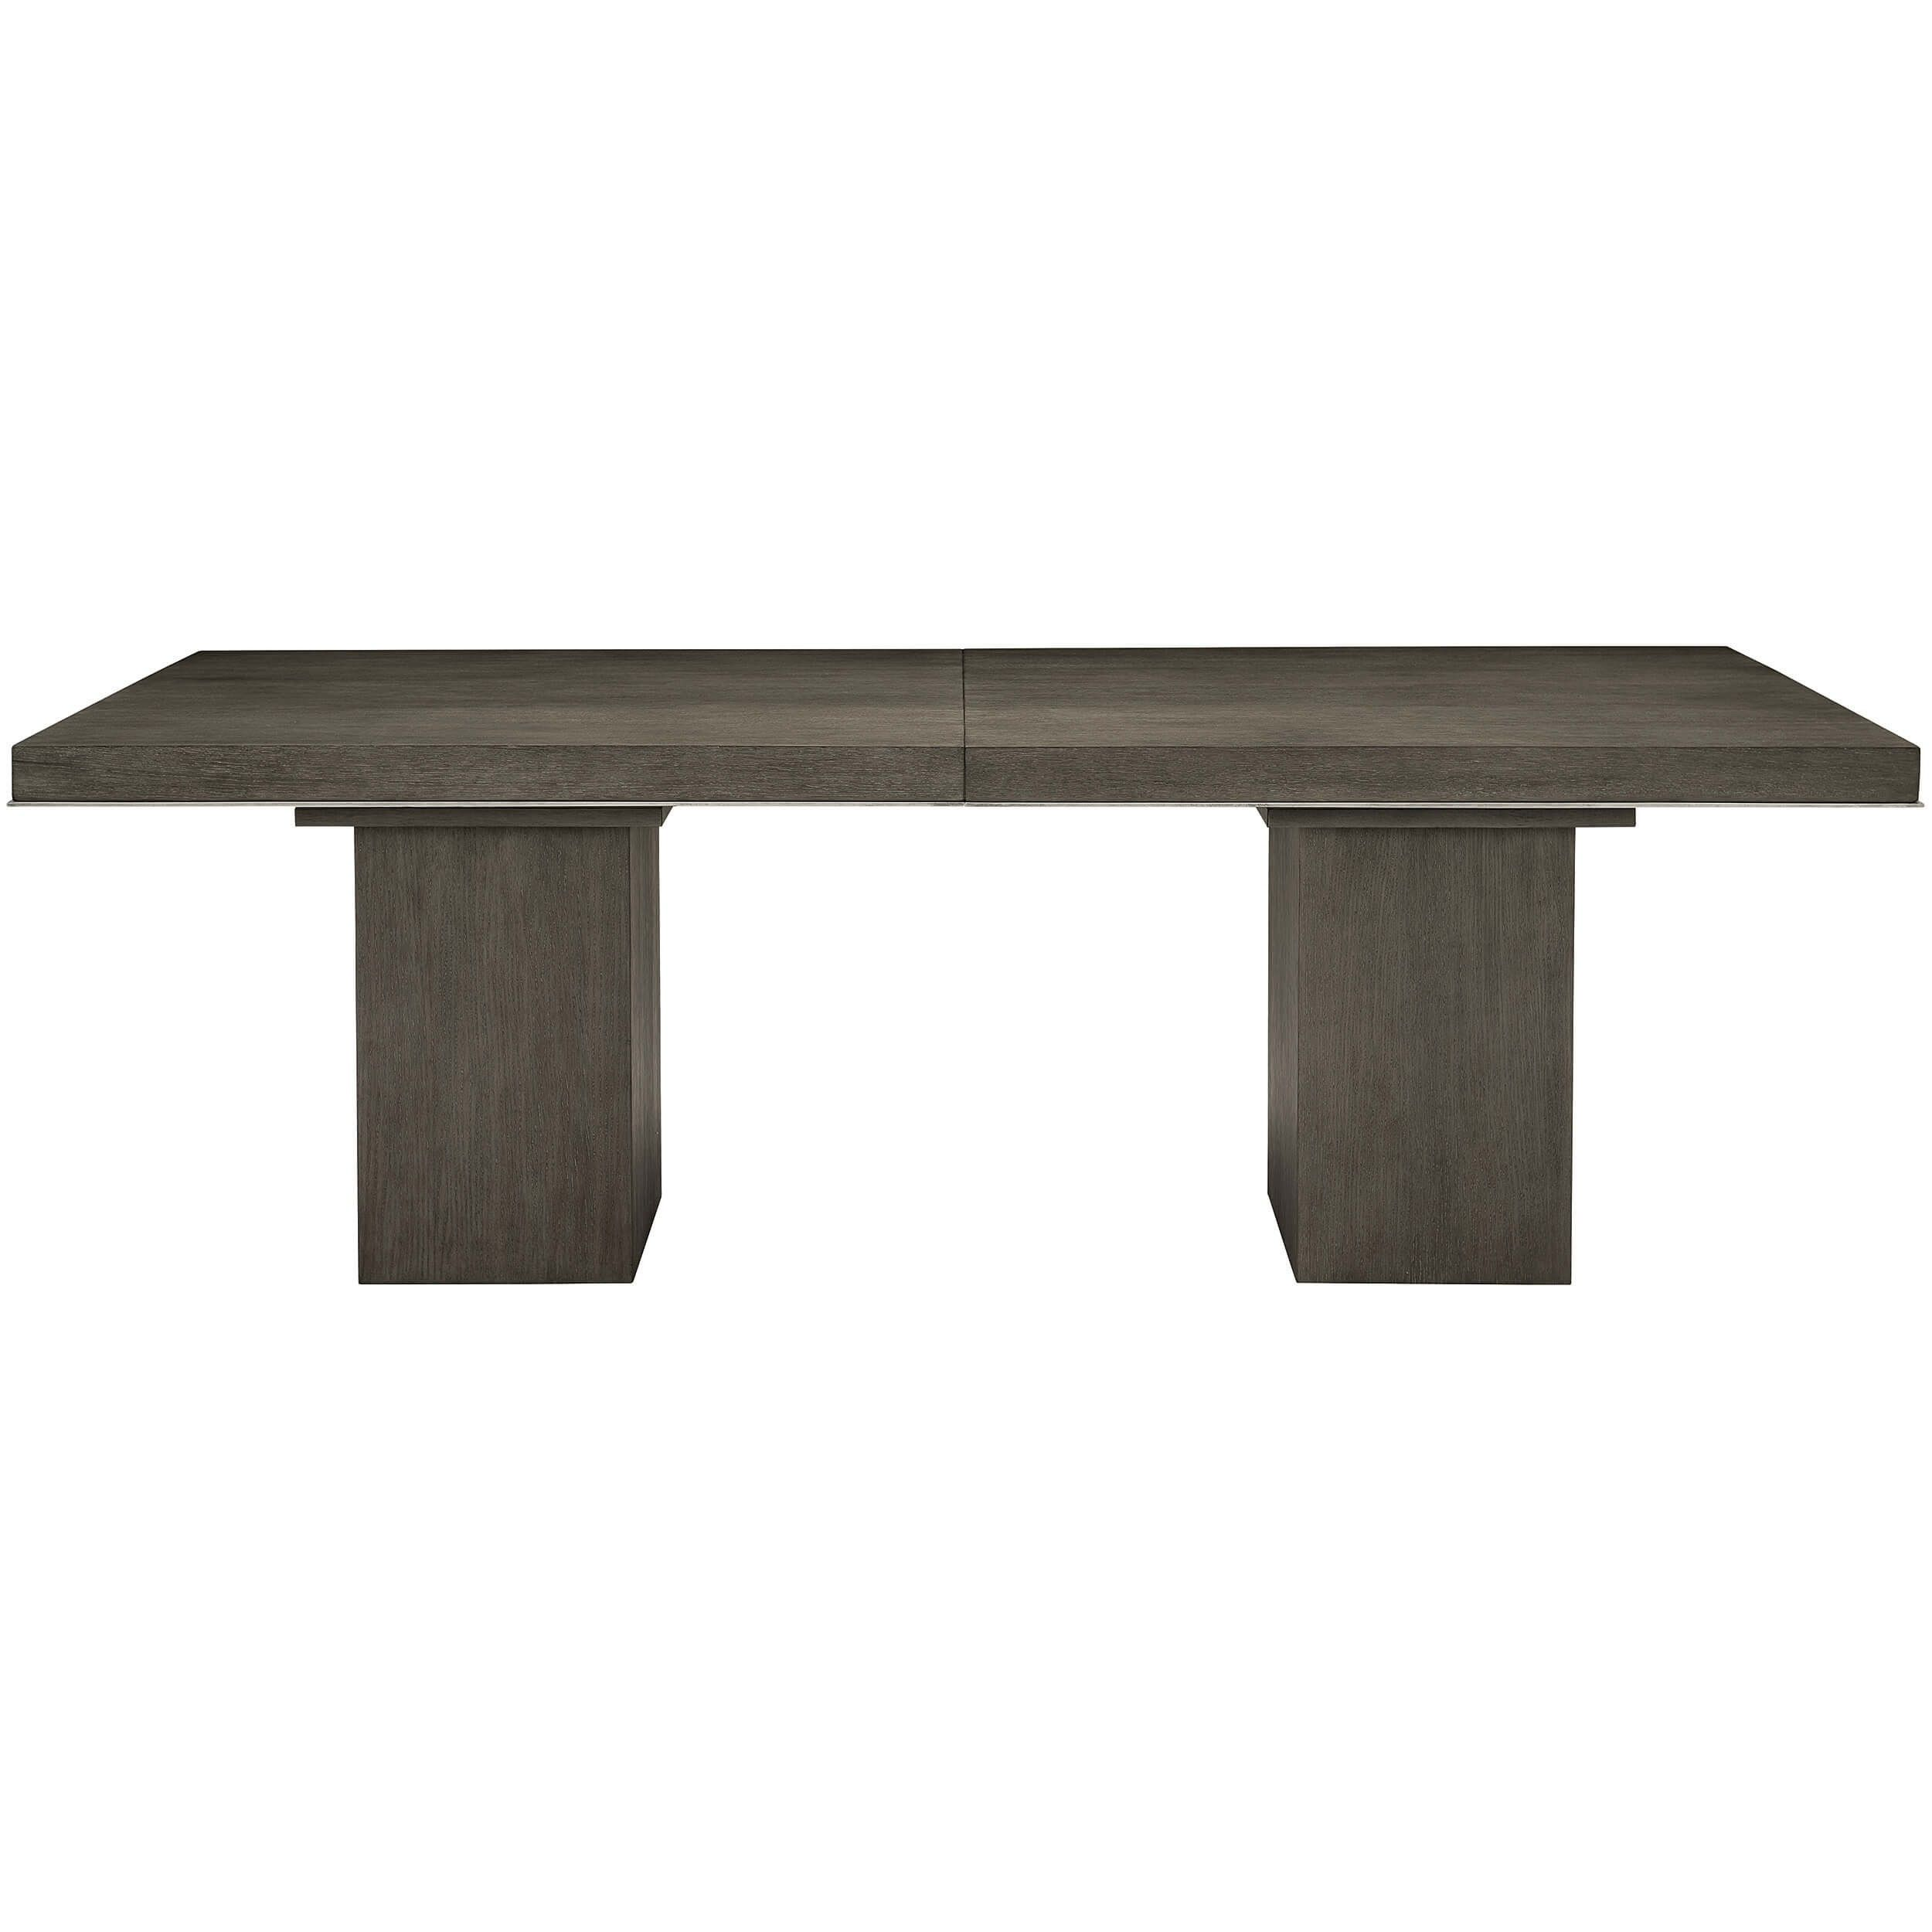 Linea Rectangular Dining Table Cerused Charcoal Dining Table Dining Table Black Rectangular Dining Table